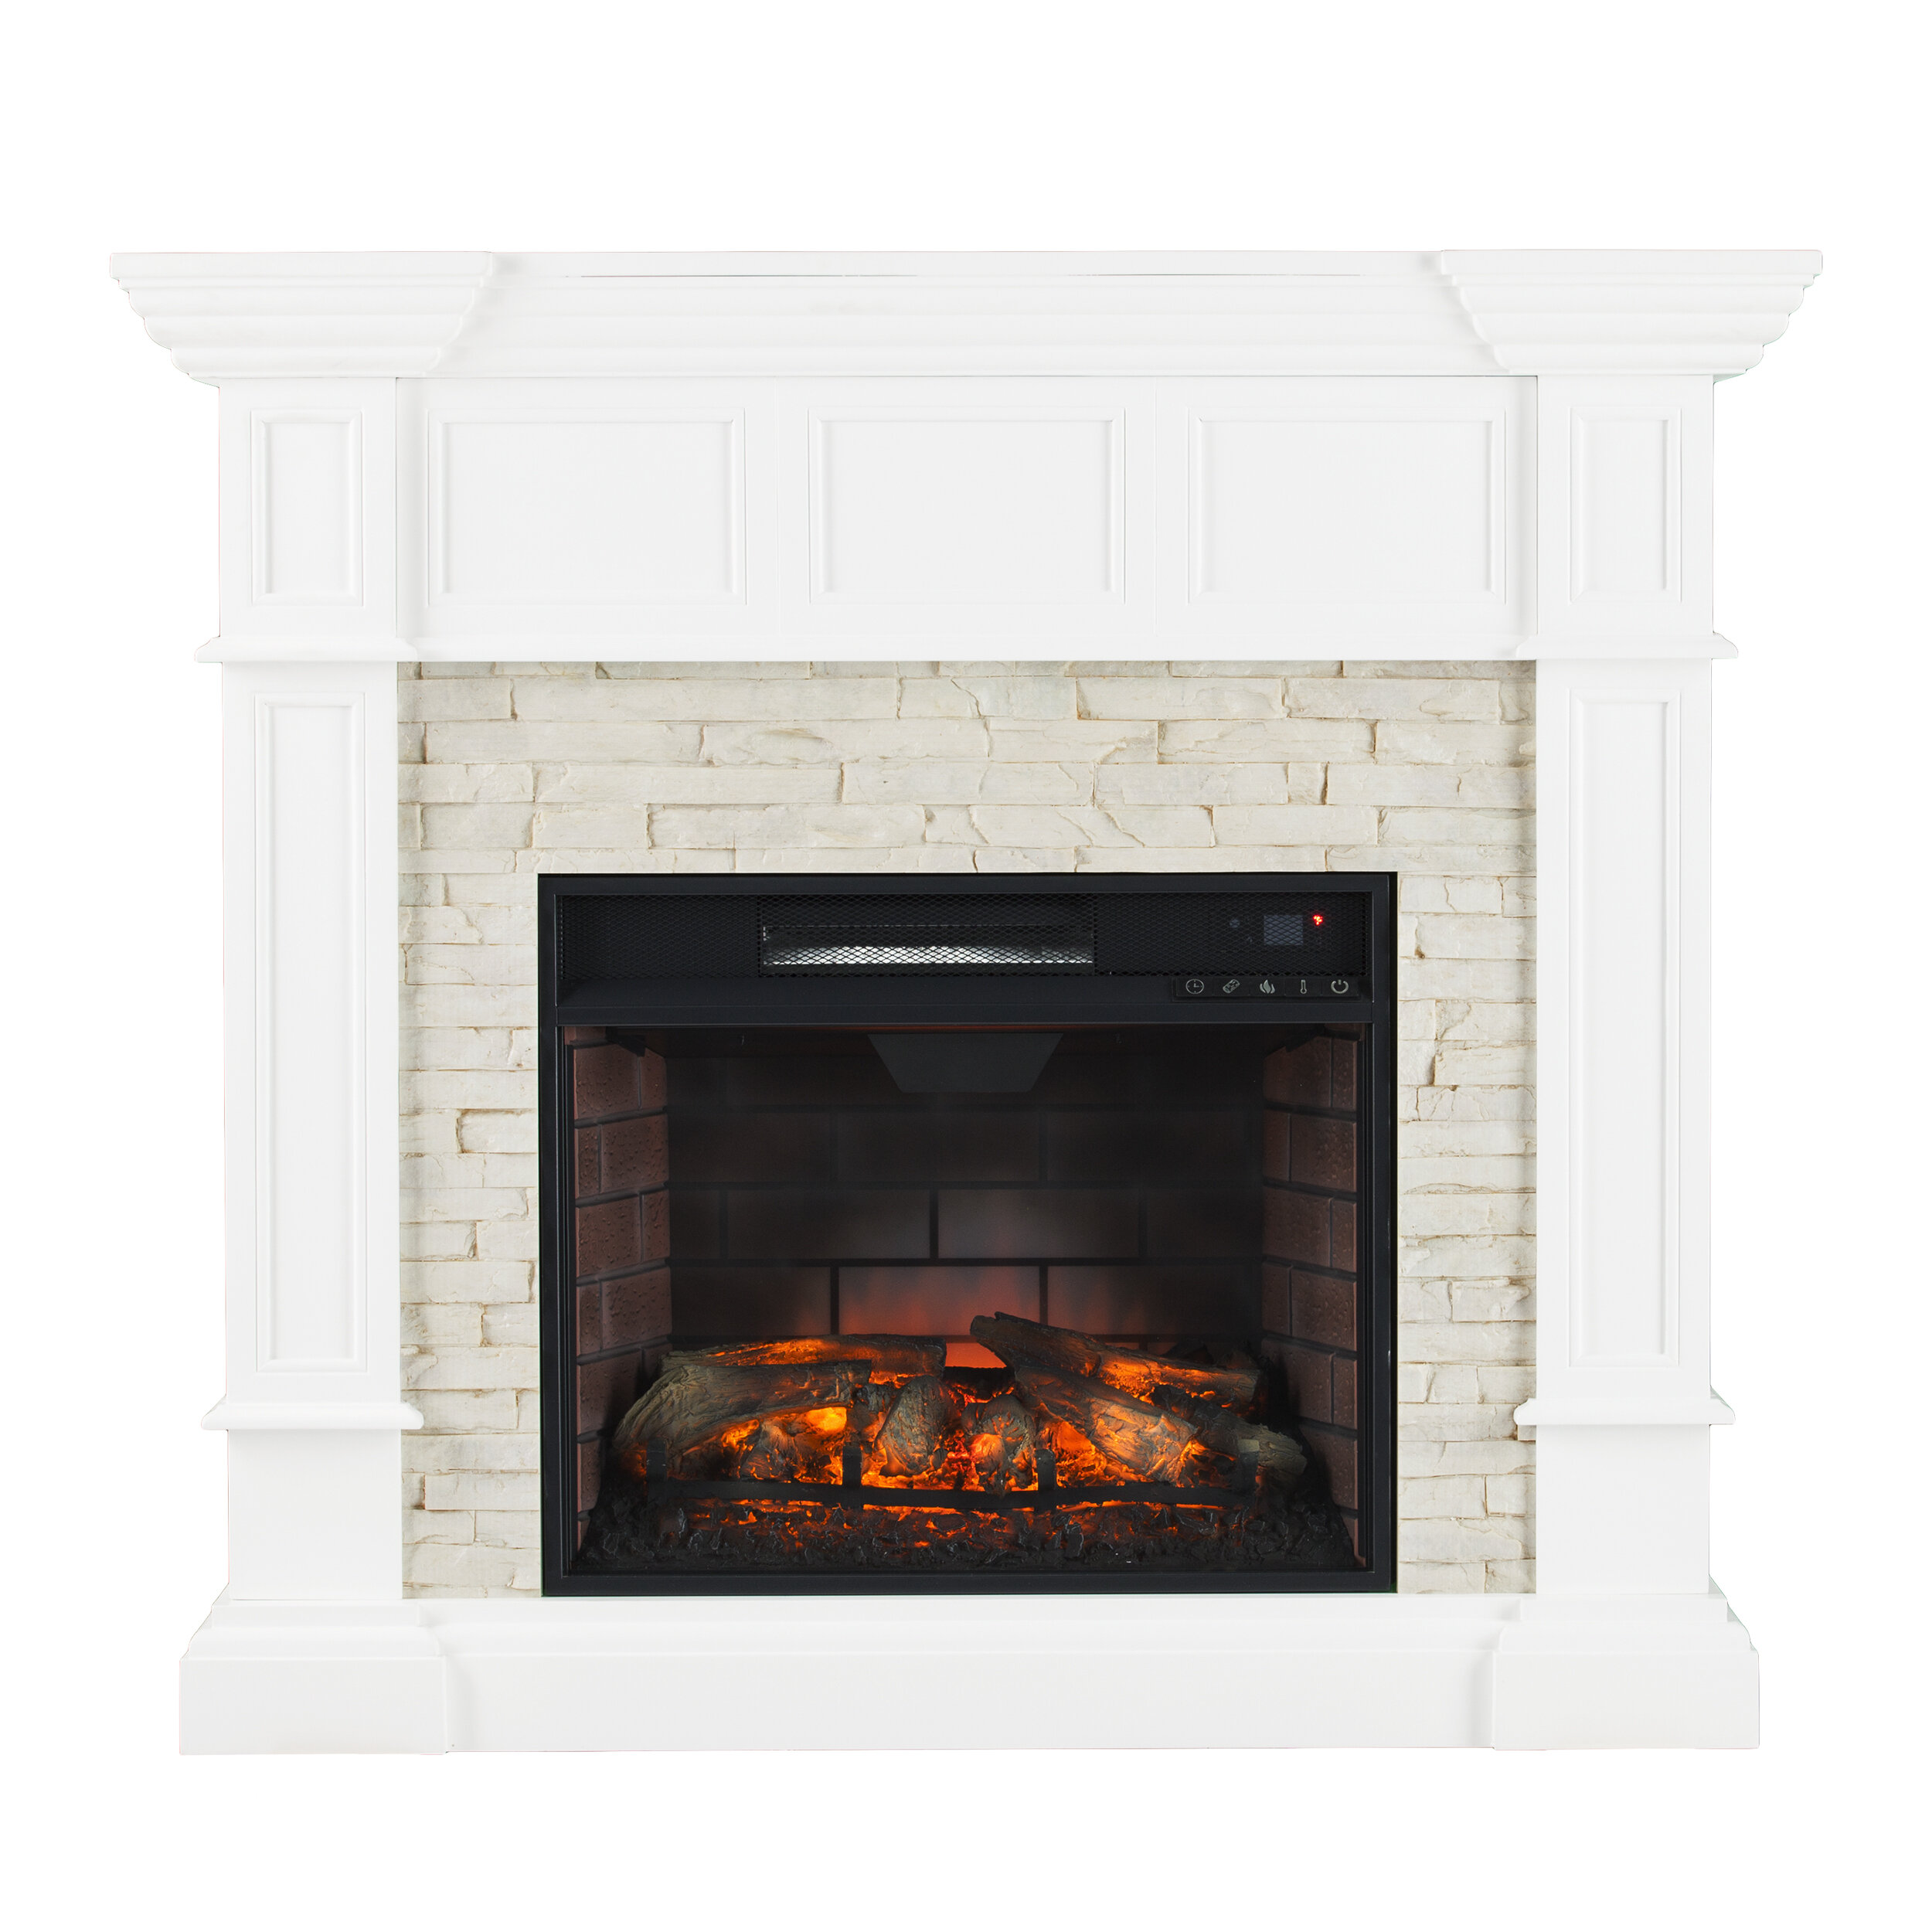 know fireplace you to homedesign design popular here year tile ideas unlimited modern best in this most need fireplaces tiles pin images